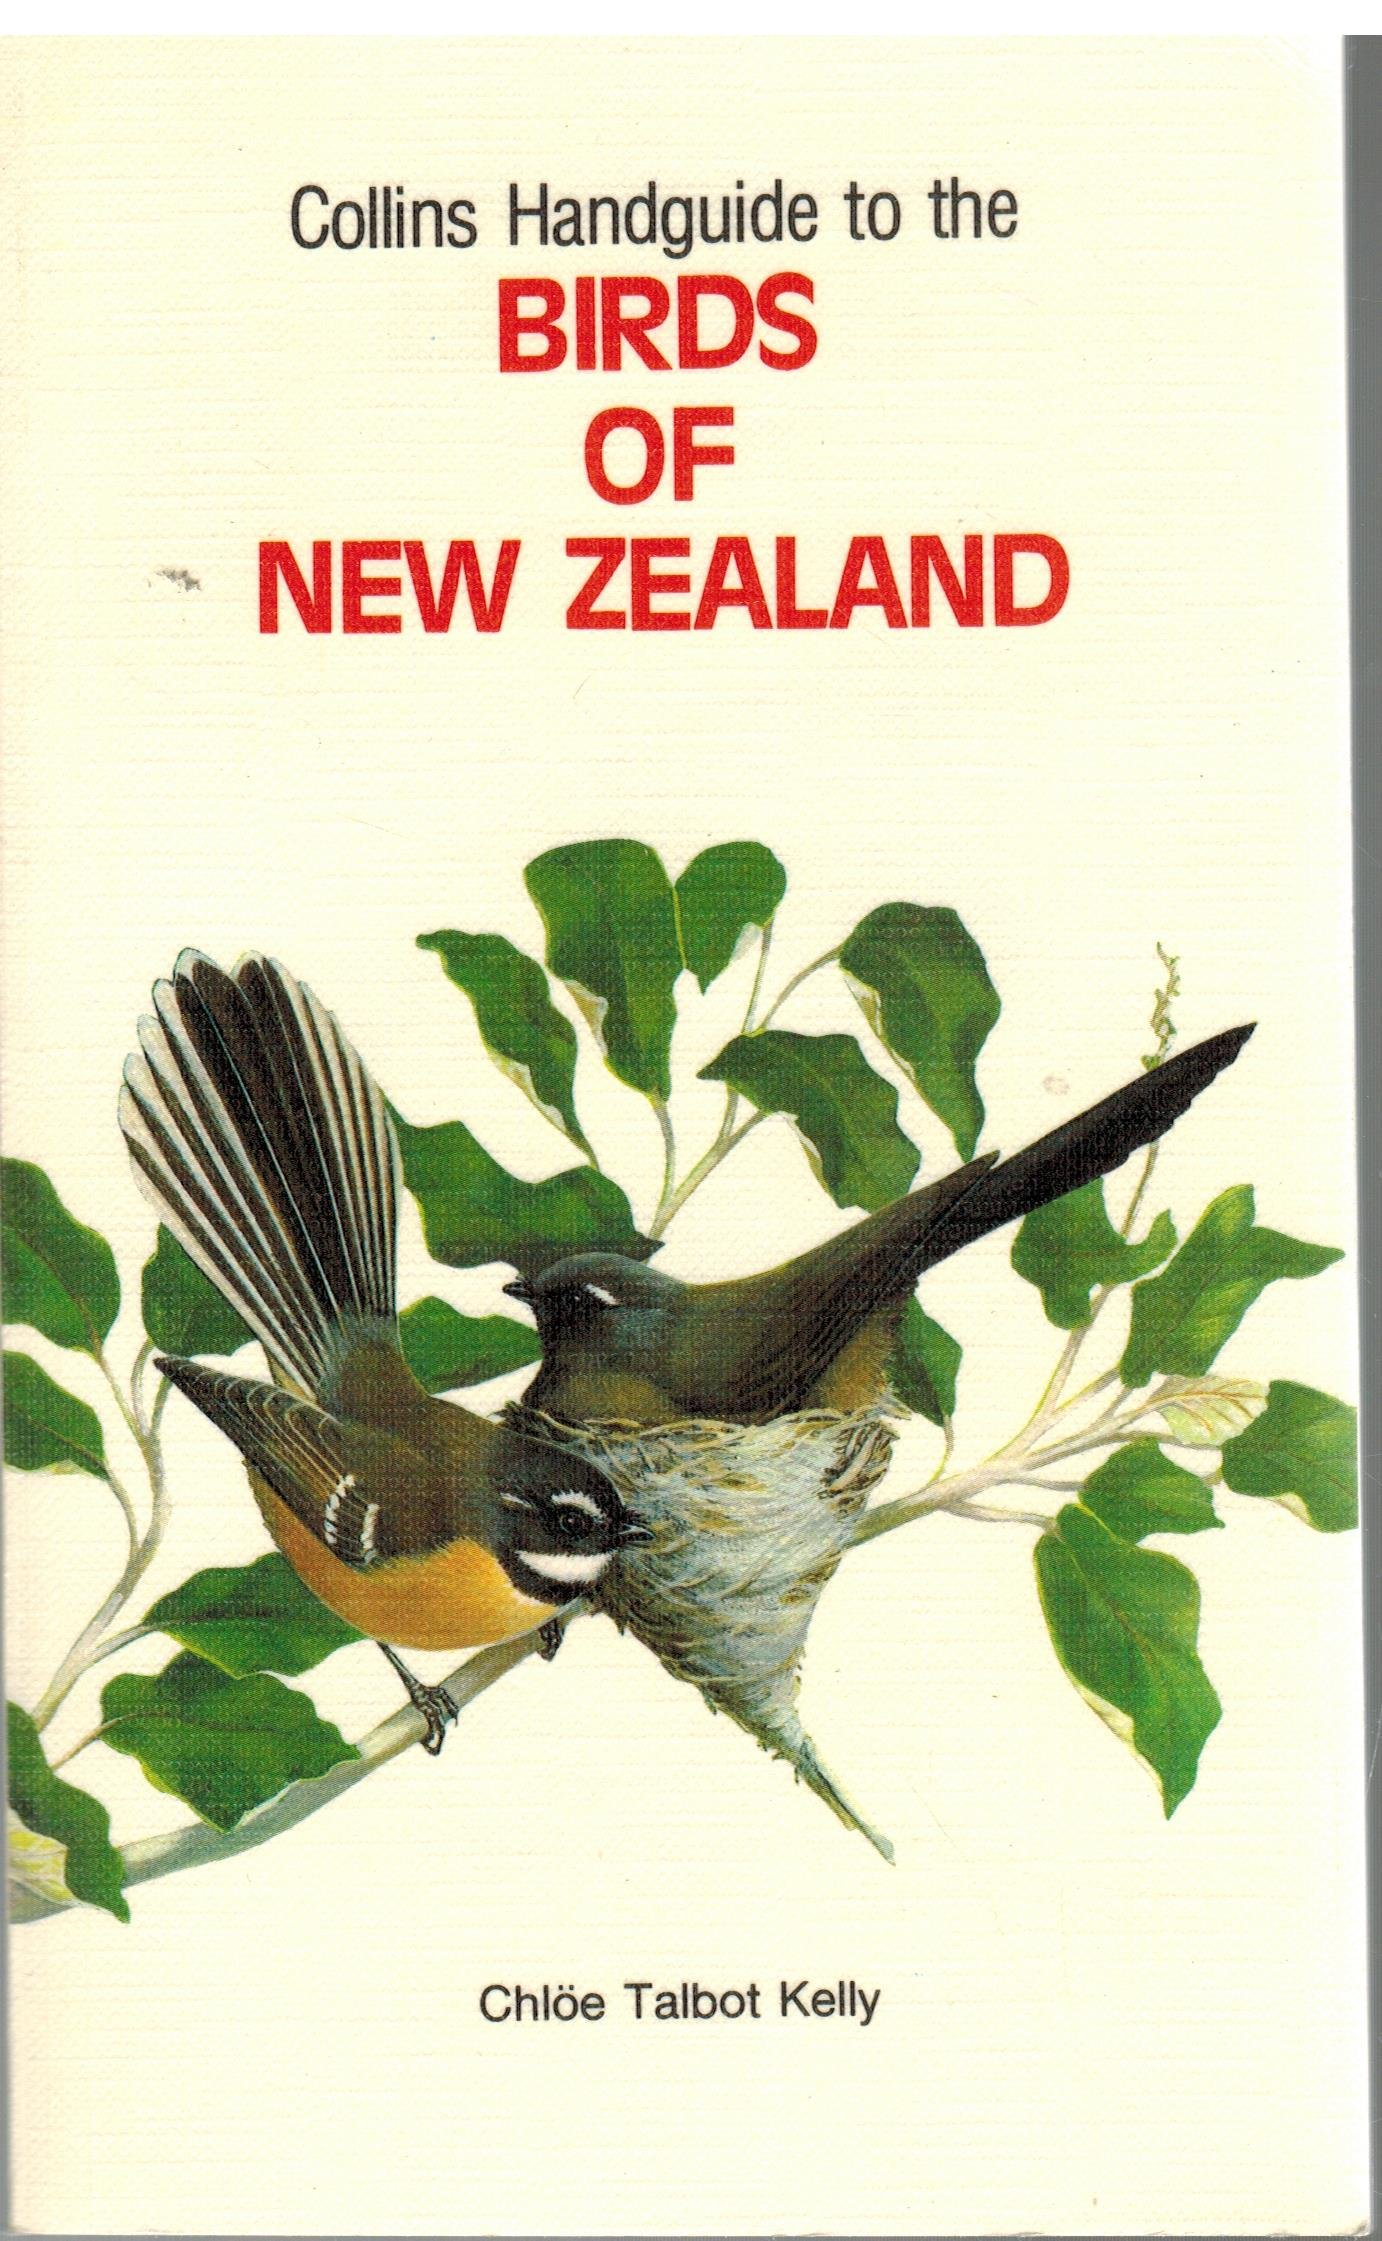 Collins Handguide to the Birds of New Zealand: Chloe Talbot Kelly, Color  Illustrations: Amazon.com: Books